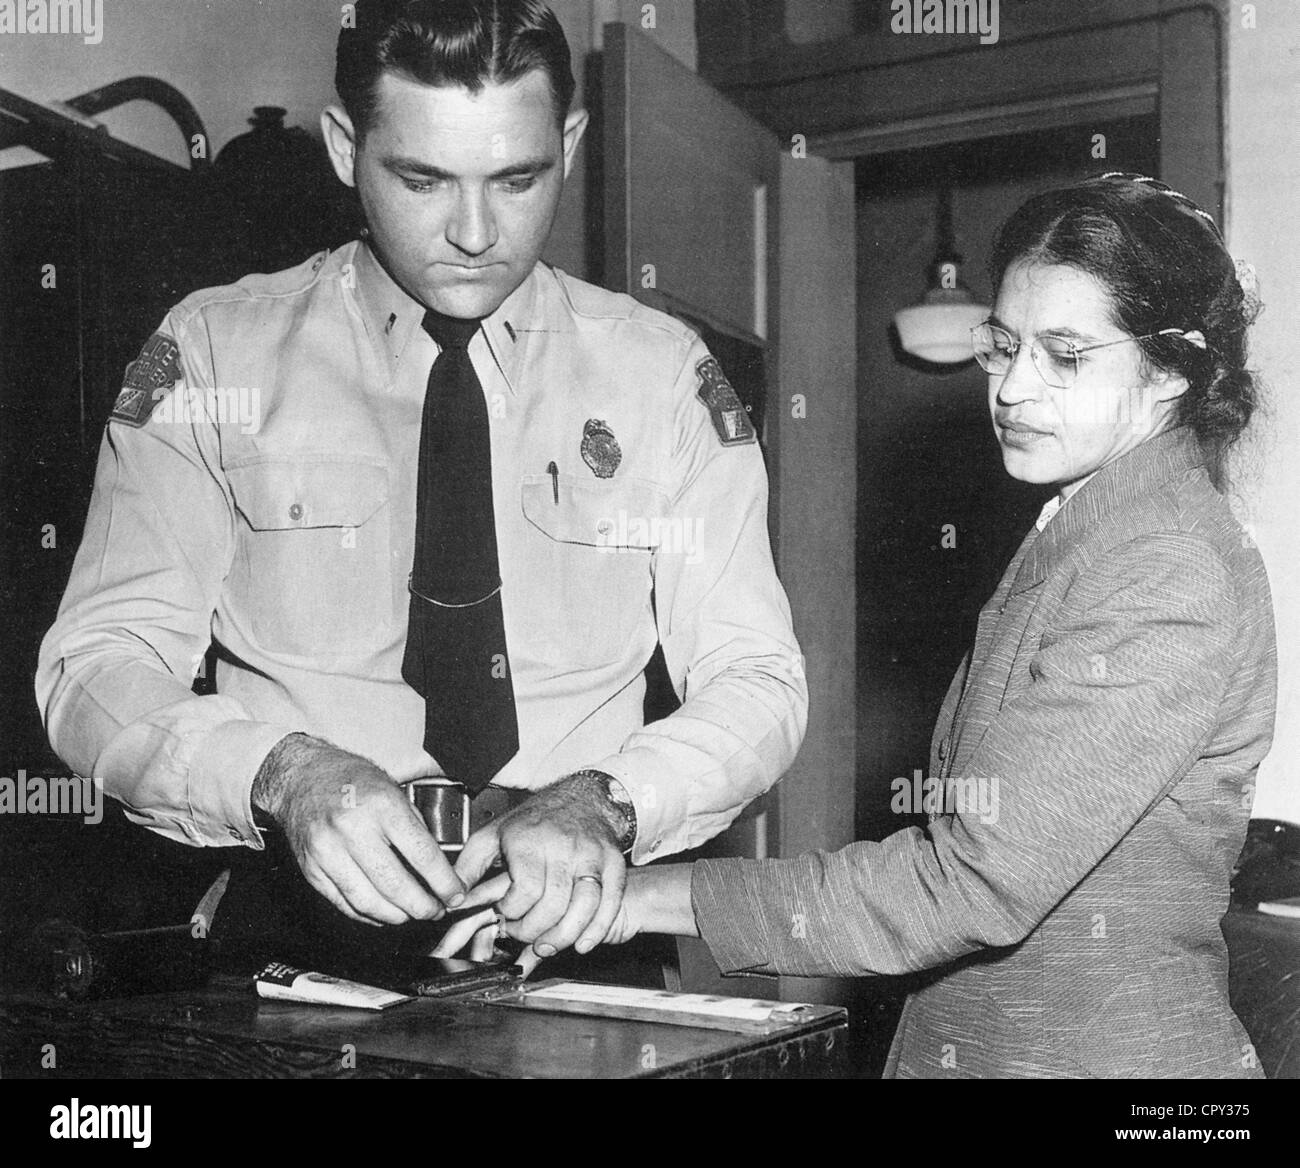 ROSA PARKS (1913-2005) Afro-American civil rights activist has her fingerprints taken after her bus segregation - Stock Image